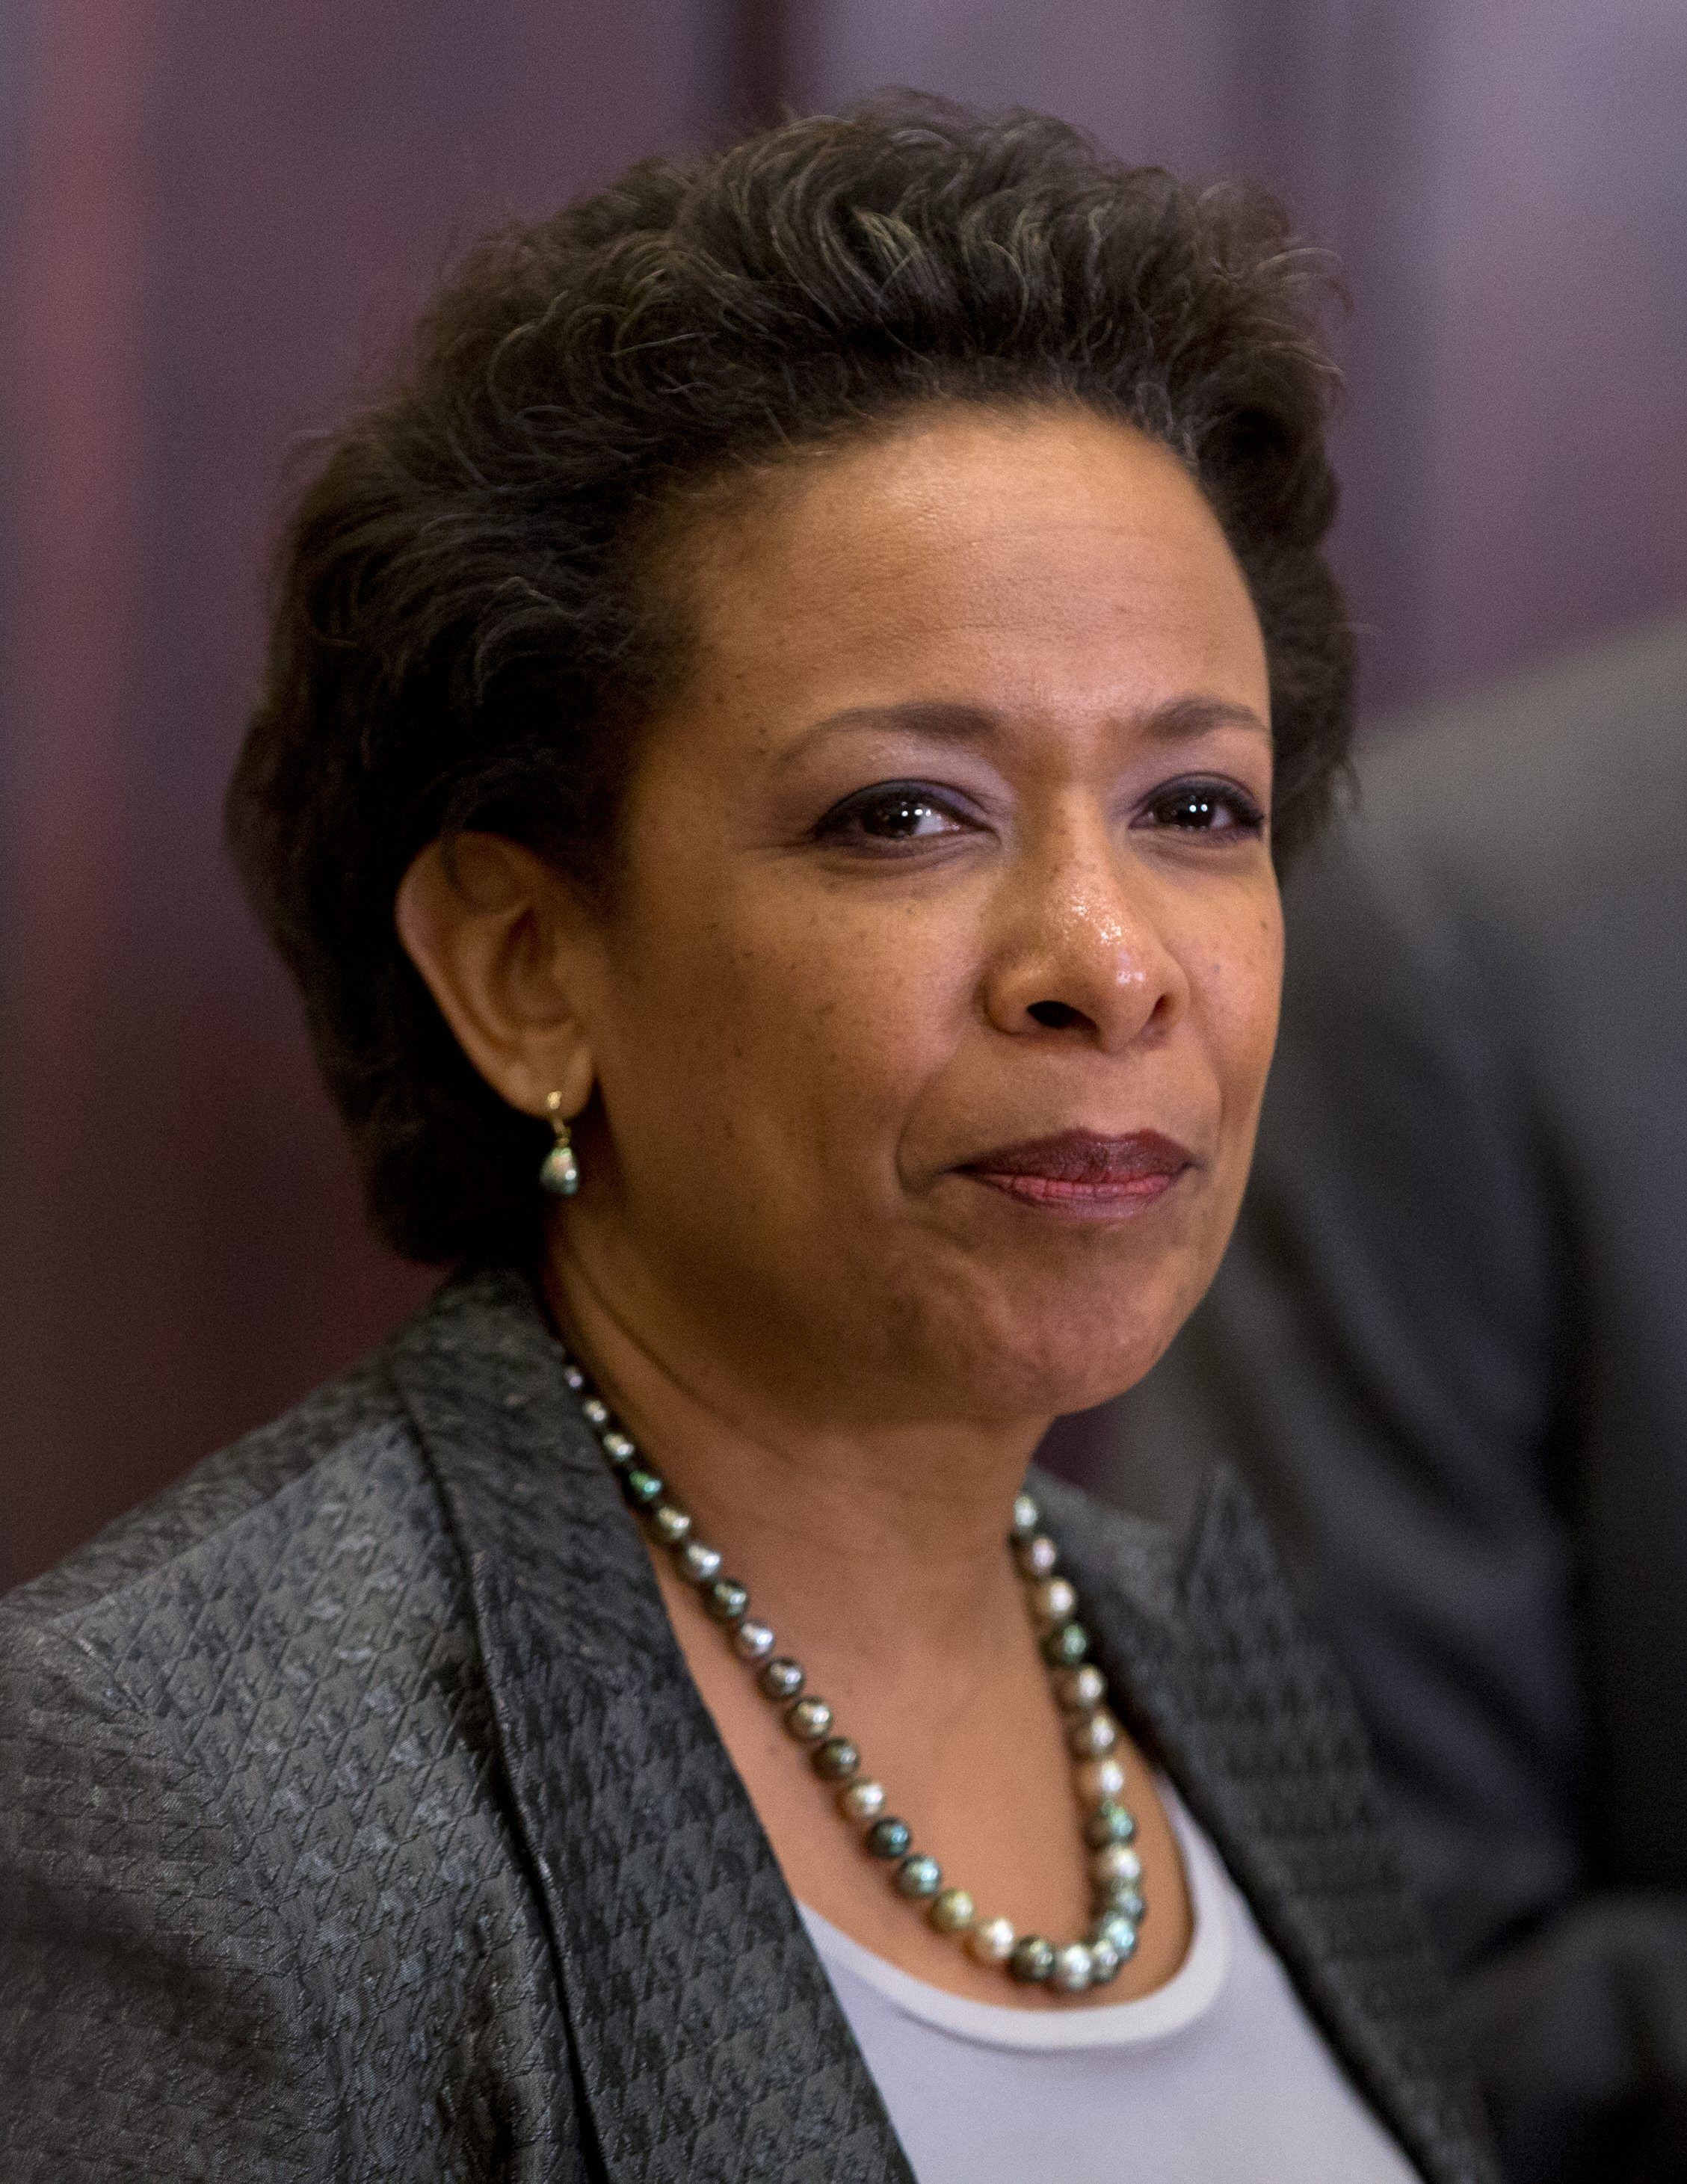 loretta lynch questioned over secret deal depriving fraud victims loretta lynch questioned over secret deal depriving fraud victims of 40m washington times